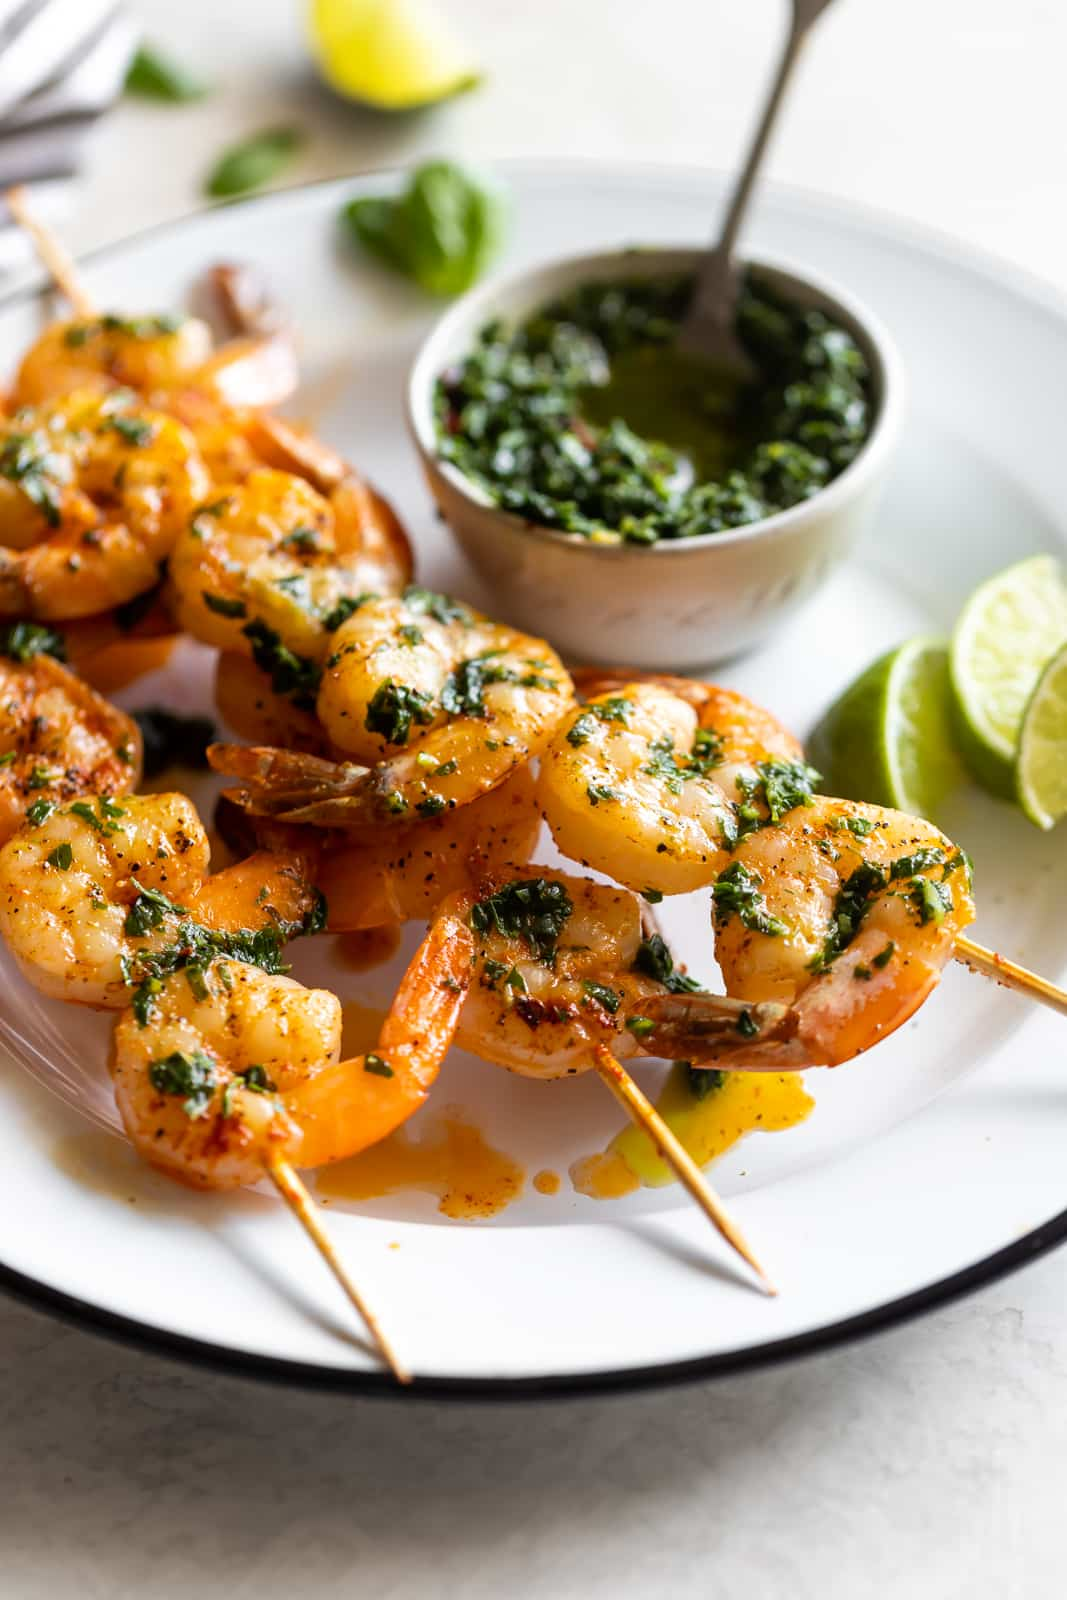 Flavorful, easy-to-make shrimp skewers made with a fresh, homemade basil chimichurri. A great appetizer or main dish ready in less than 15 minutes!